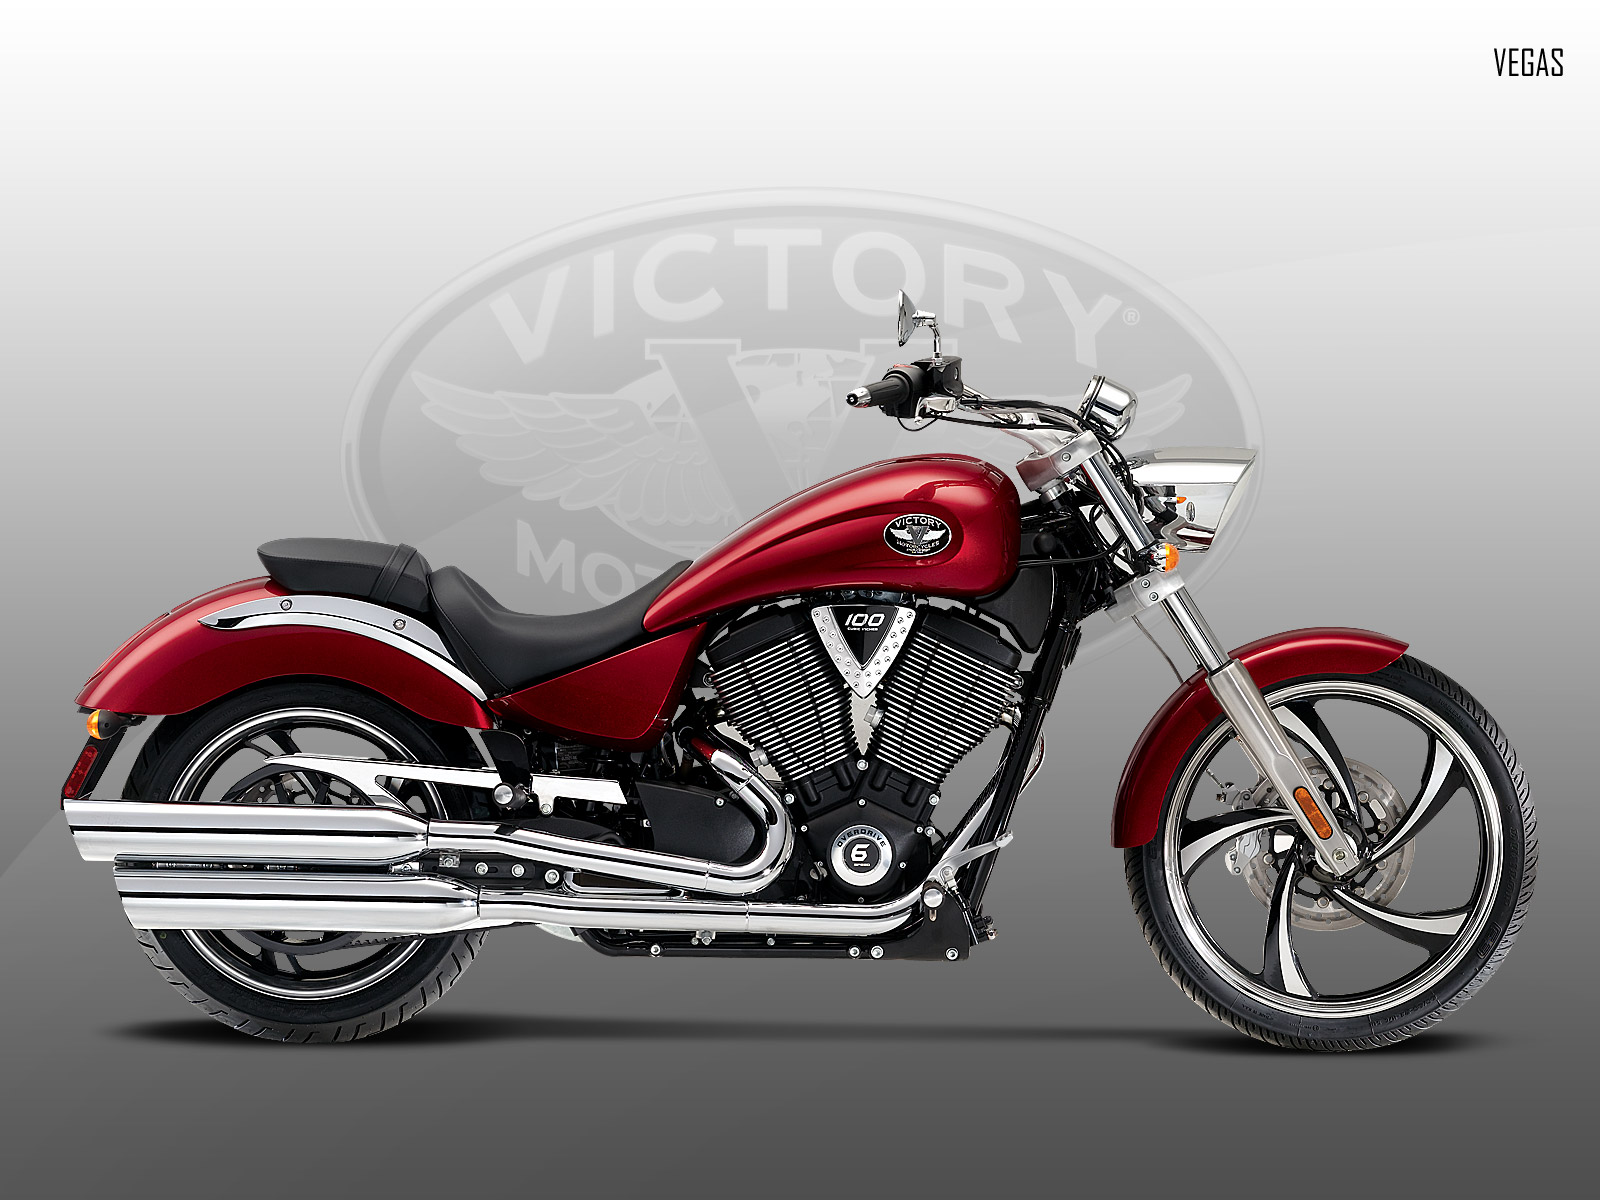 Victory vegas photo - 1